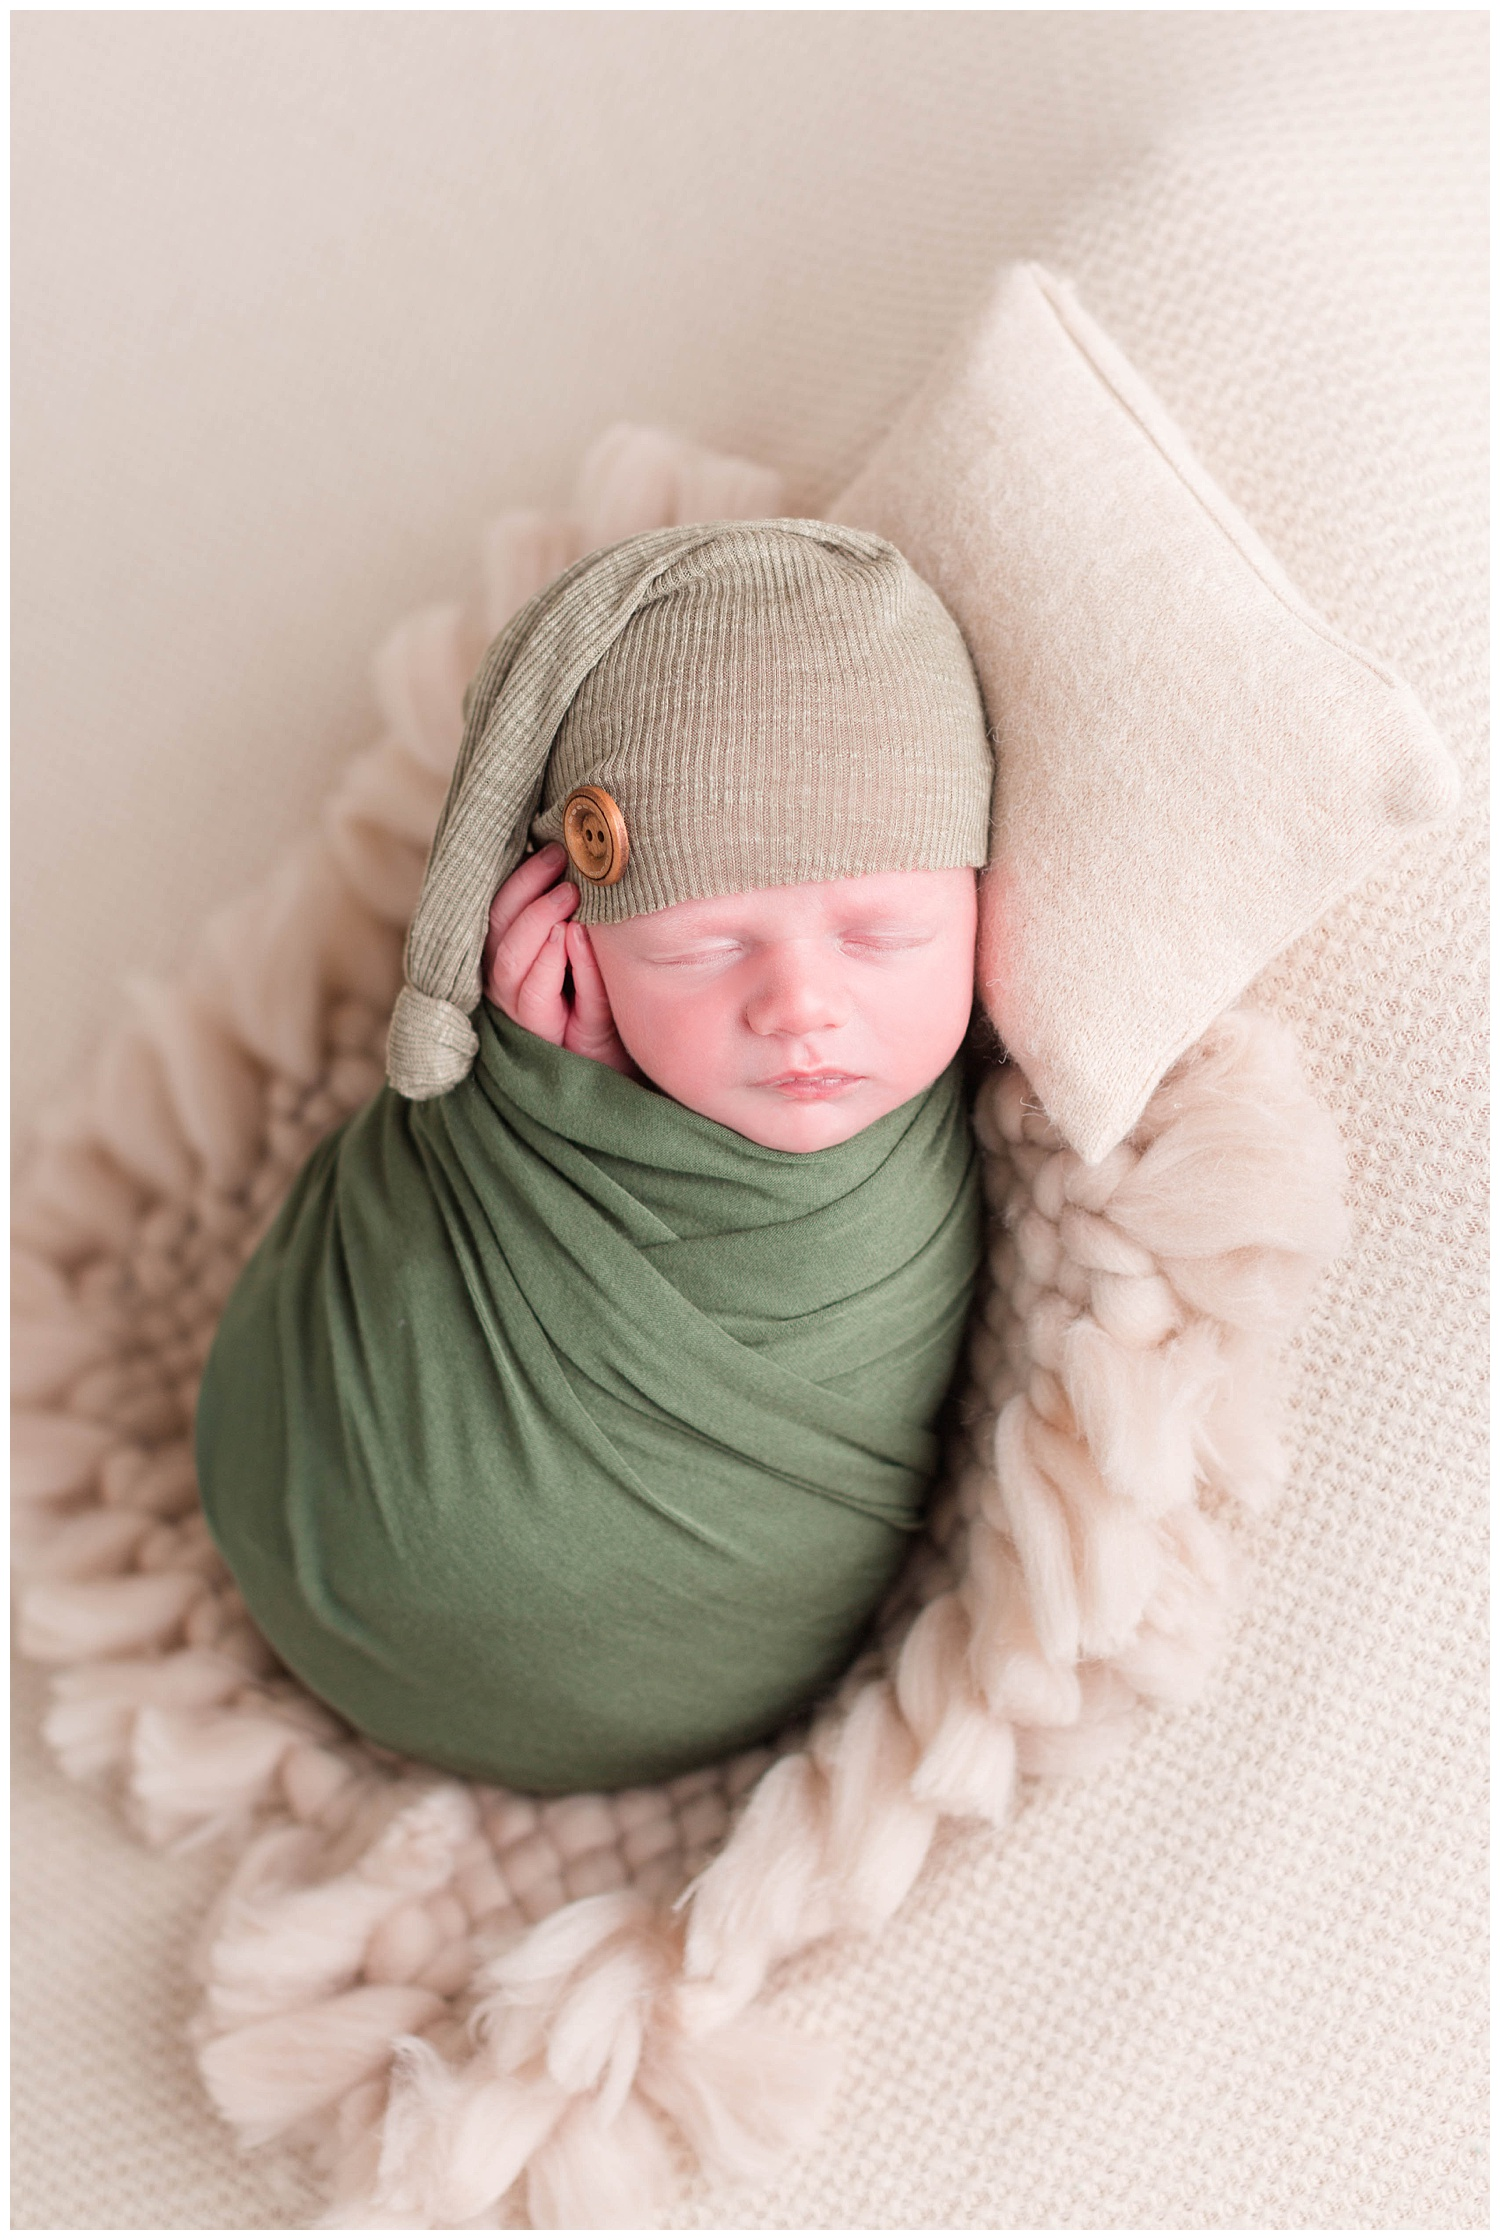 Newborn baby boy wrapped in a green swaddle wearing a green night cap with his hands gently folded along his cheek. | CB Studio